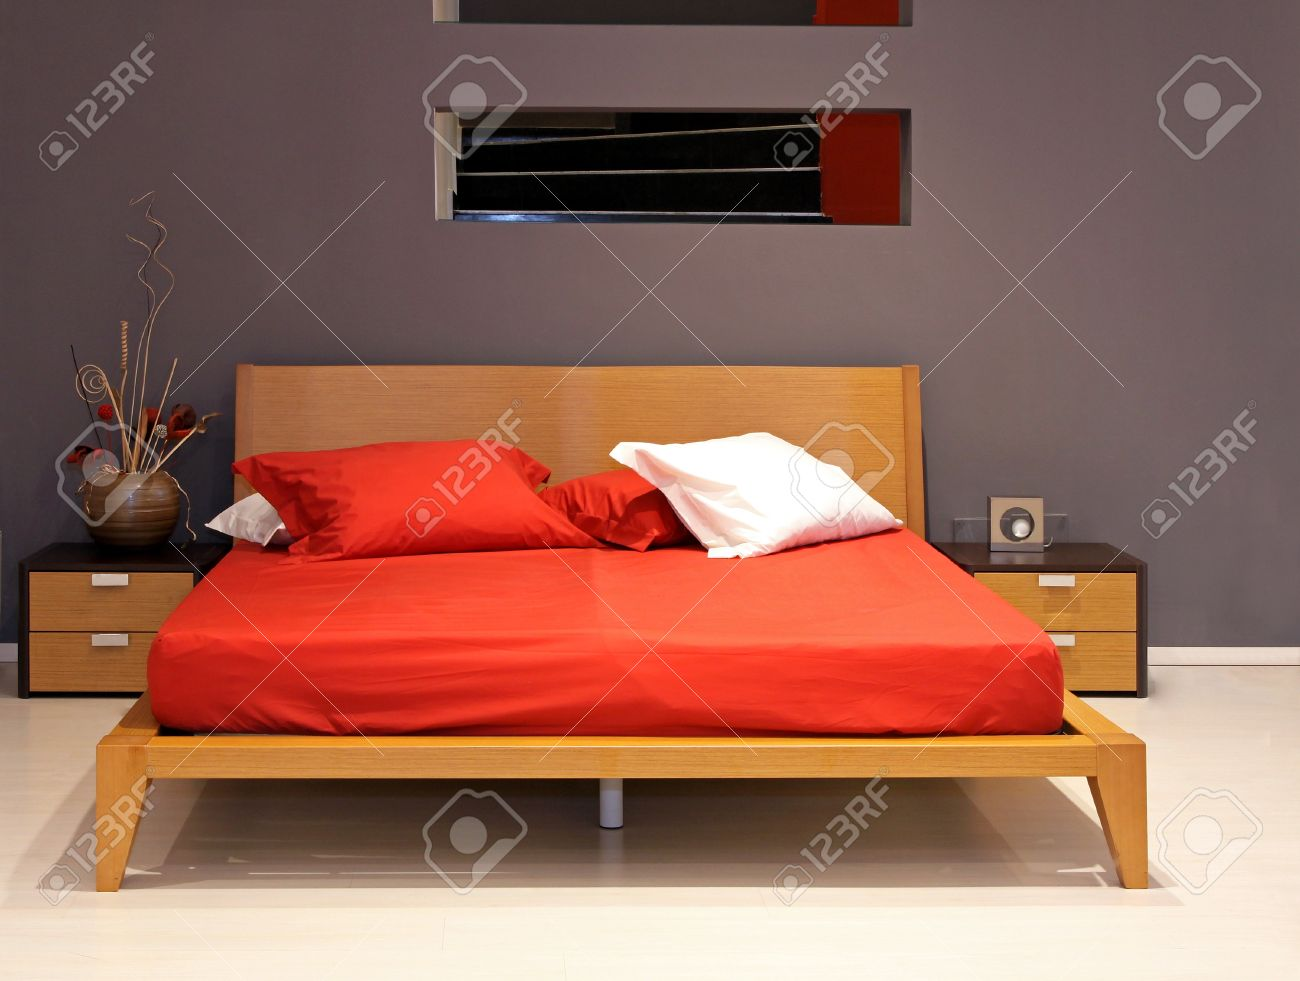 Minimalistic double bed in modern bedroom interior Stock Photo - 12149713